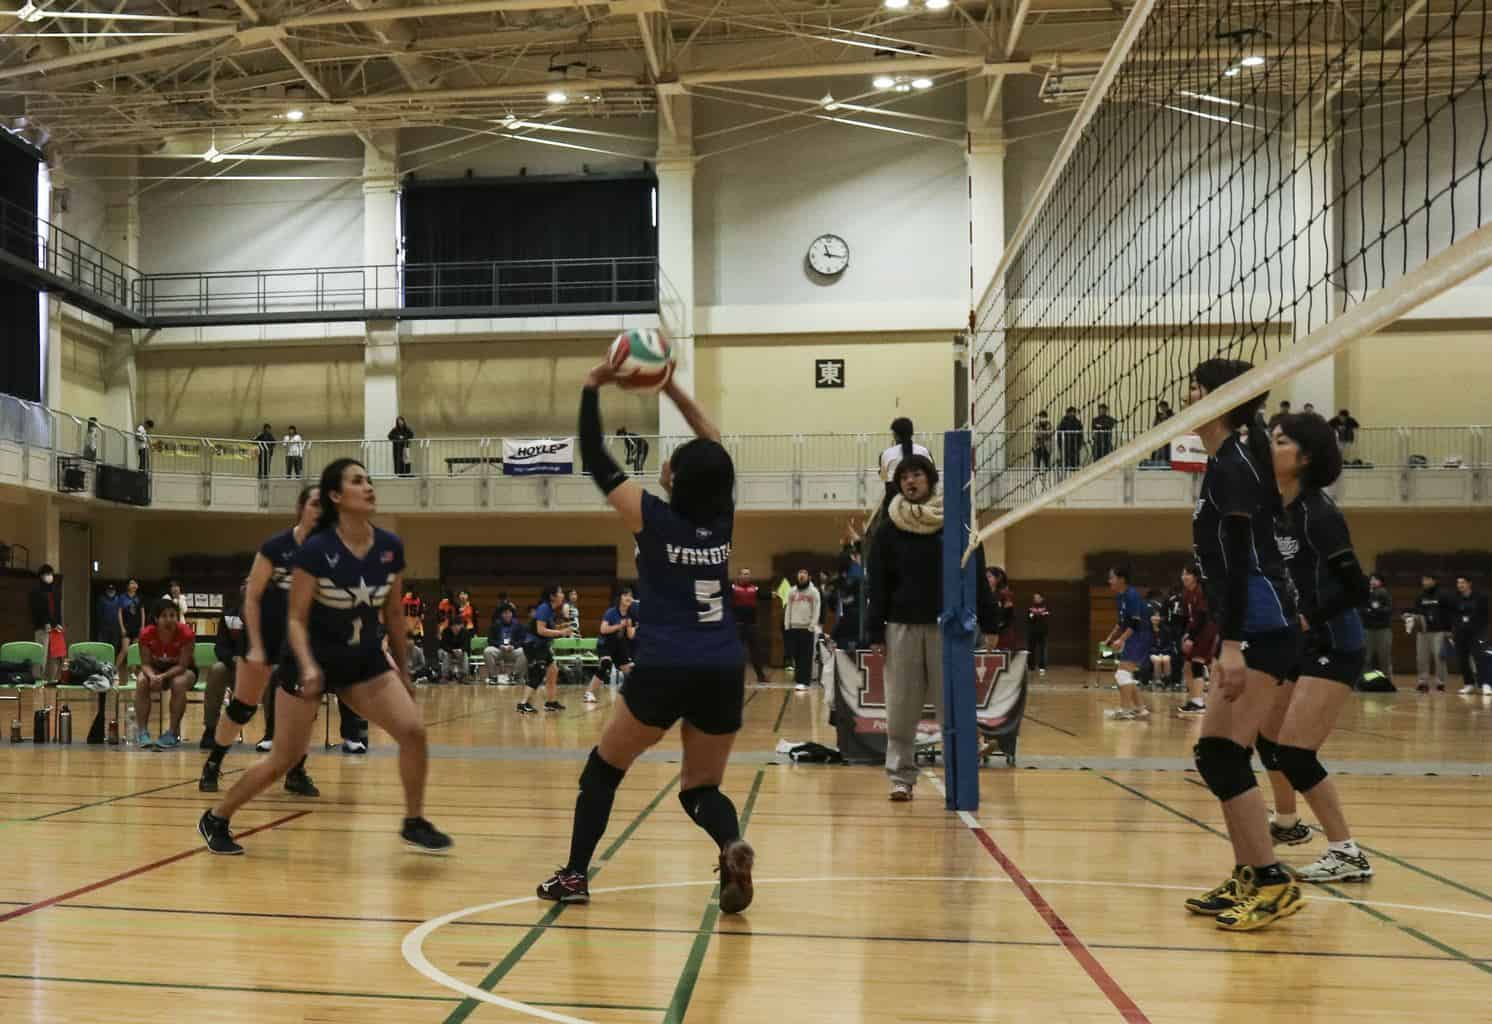 Setter passes volleyball to two teammates